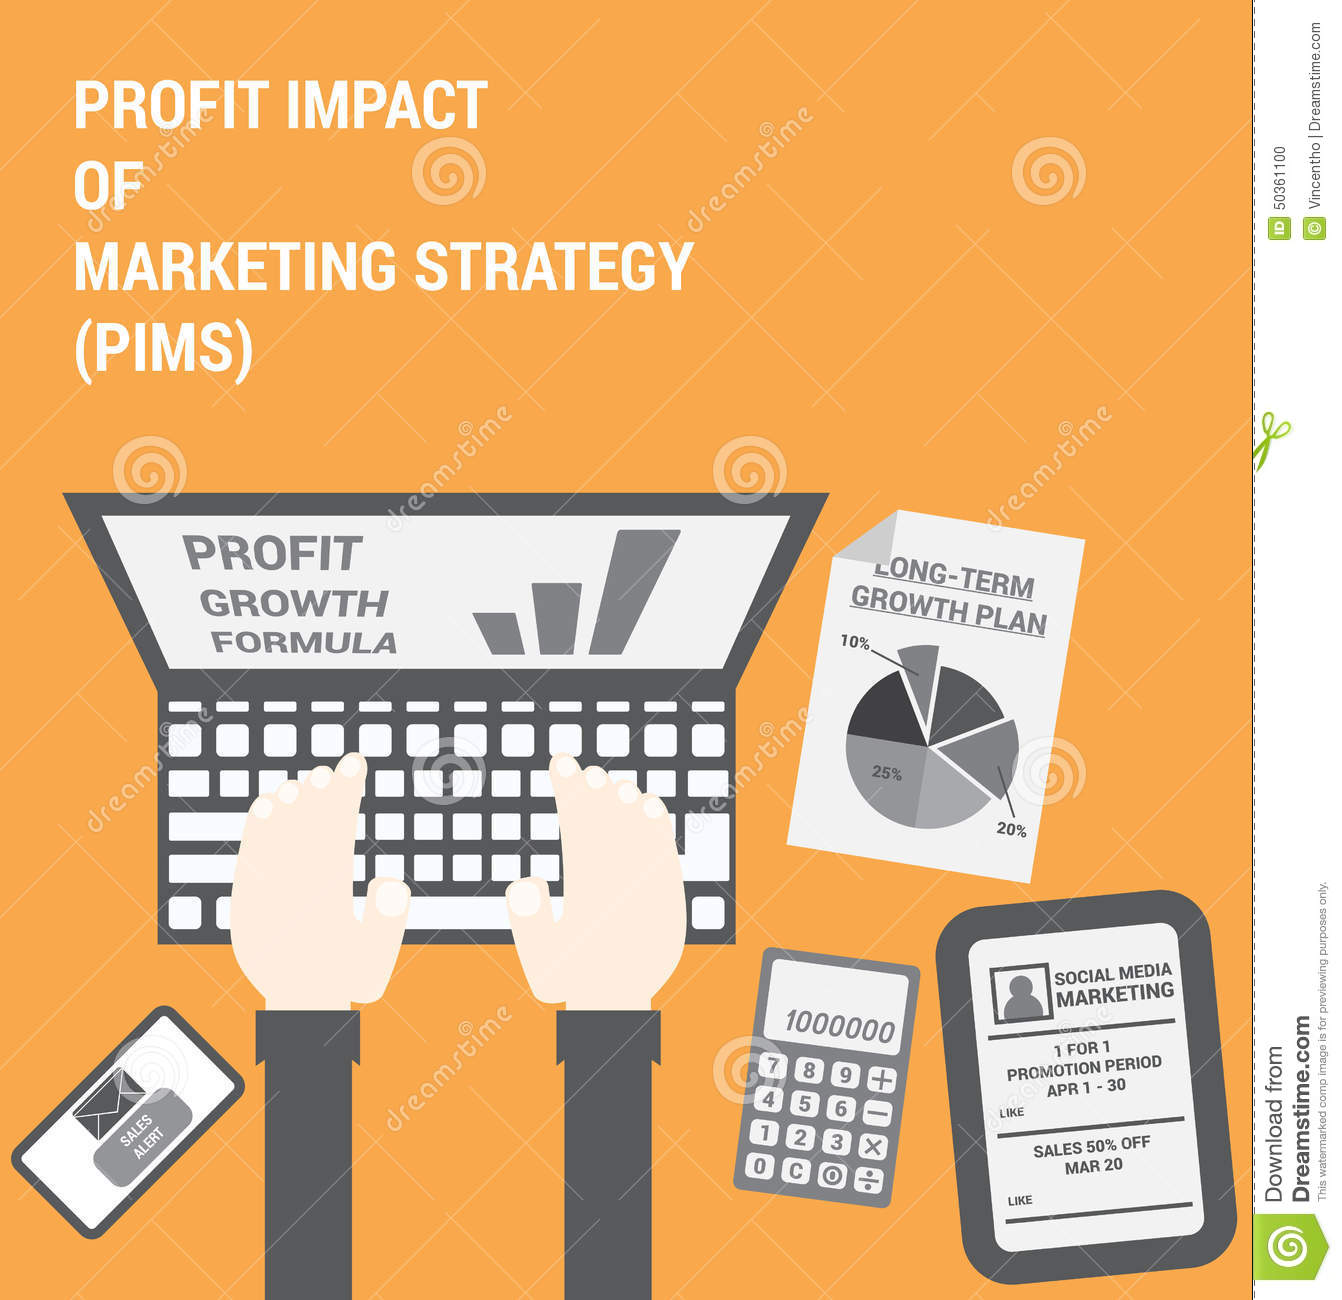 Profit Impact of Marketing Strategy or PIMS